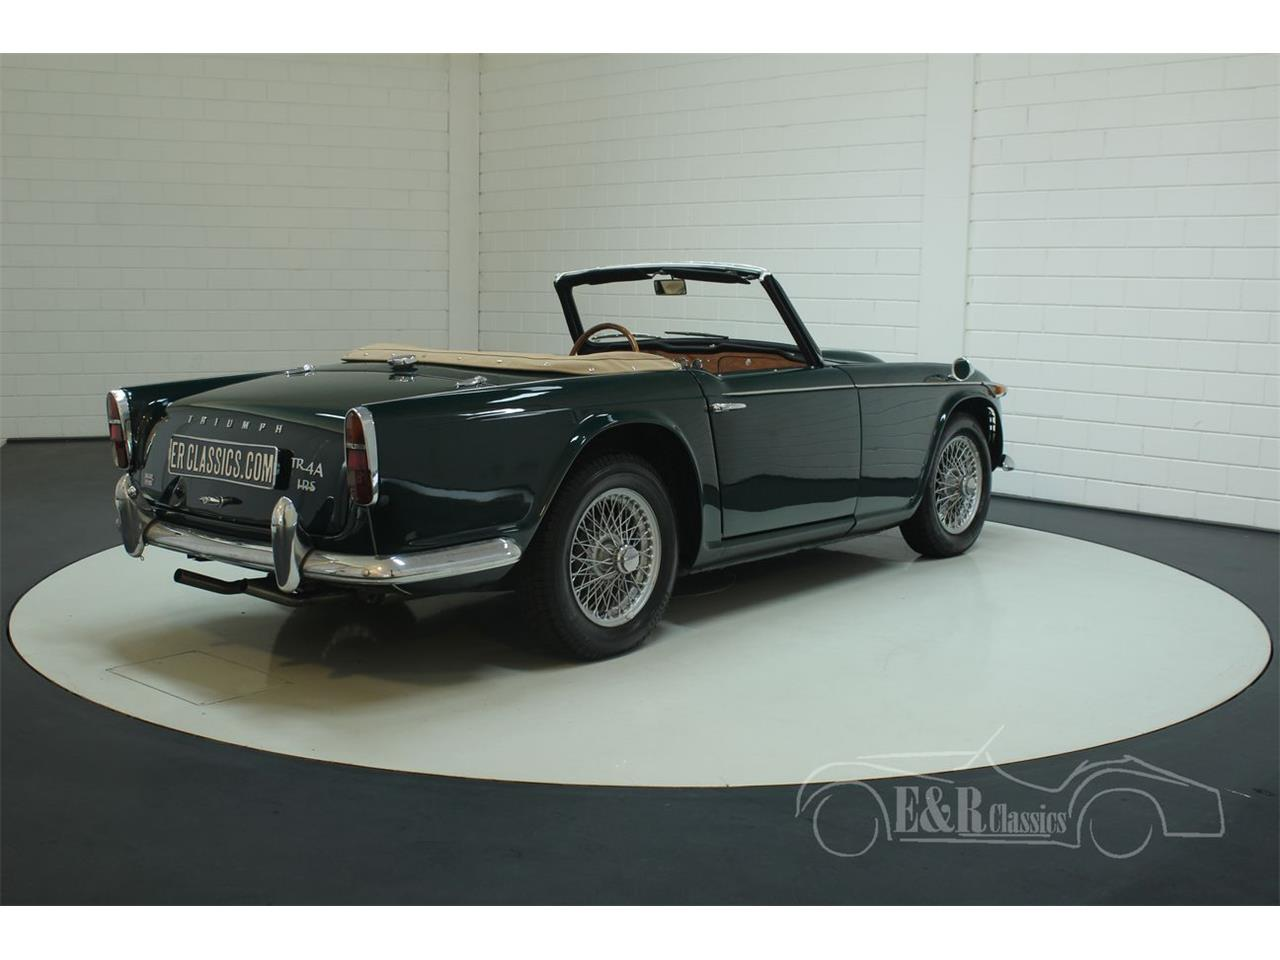 Large Picture of Classic '67 Triumph TR4 located in Noord-Brabant - $55,750.00 Offered by E & R Classics - Q45O